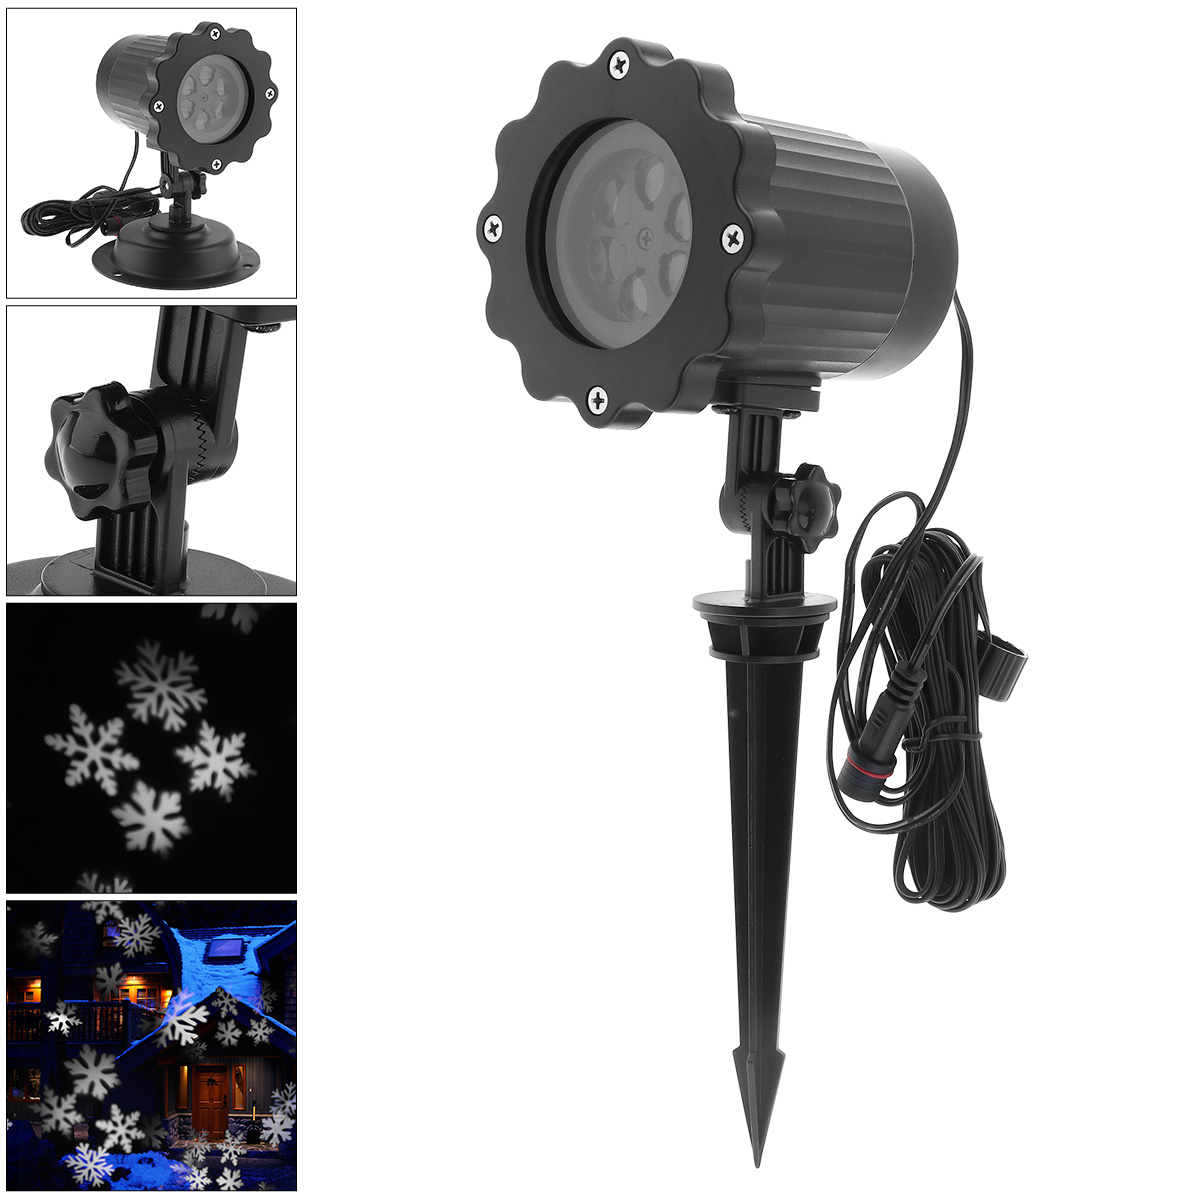 New Outdoor Waterproof LED Projector Light with Stand and Snowflake Effect for Christmas / Stage Decoration